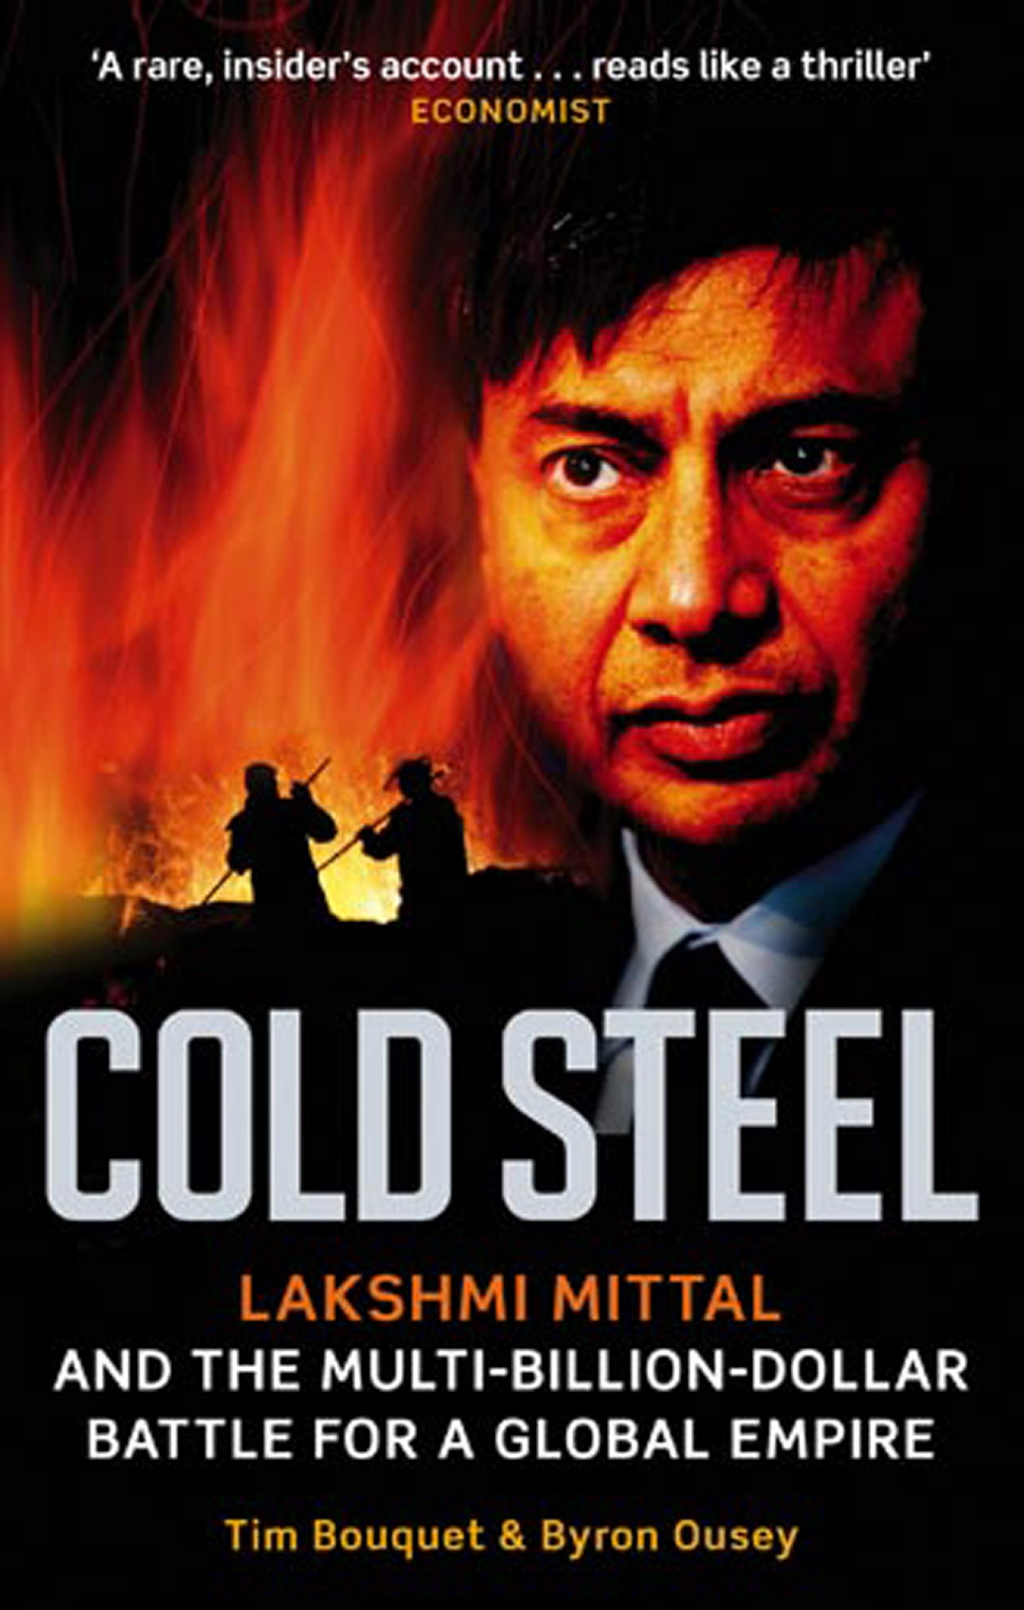 Cold Steel Lakshmi Mittal and the Multi-Billion-Dollar Battle for a Global Empire